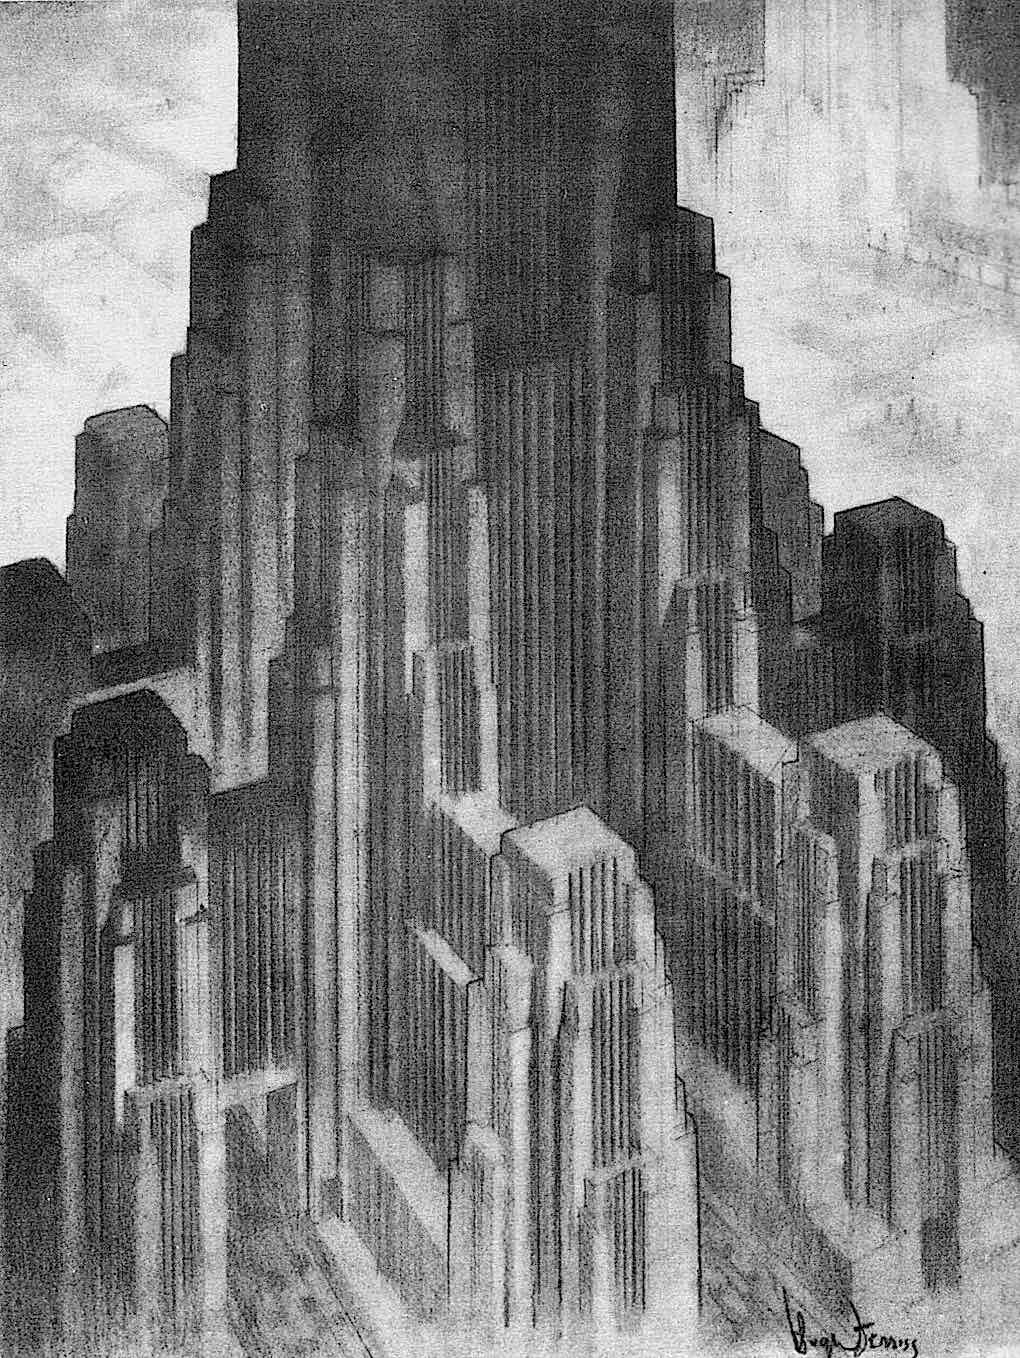 a Hugh Ferriss tower or giant building